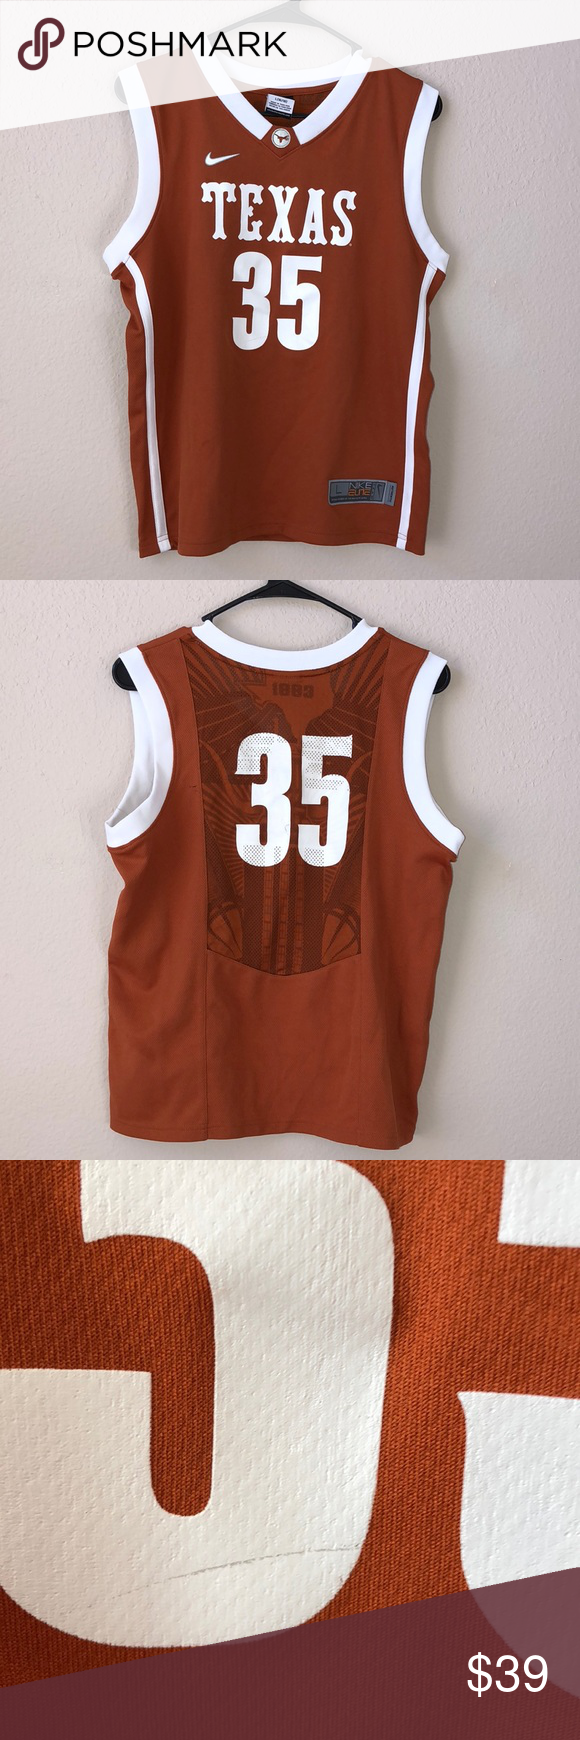 reputable site 61255 badb1 University Of Texas Kevin Durant College Jersey | My Posh ...